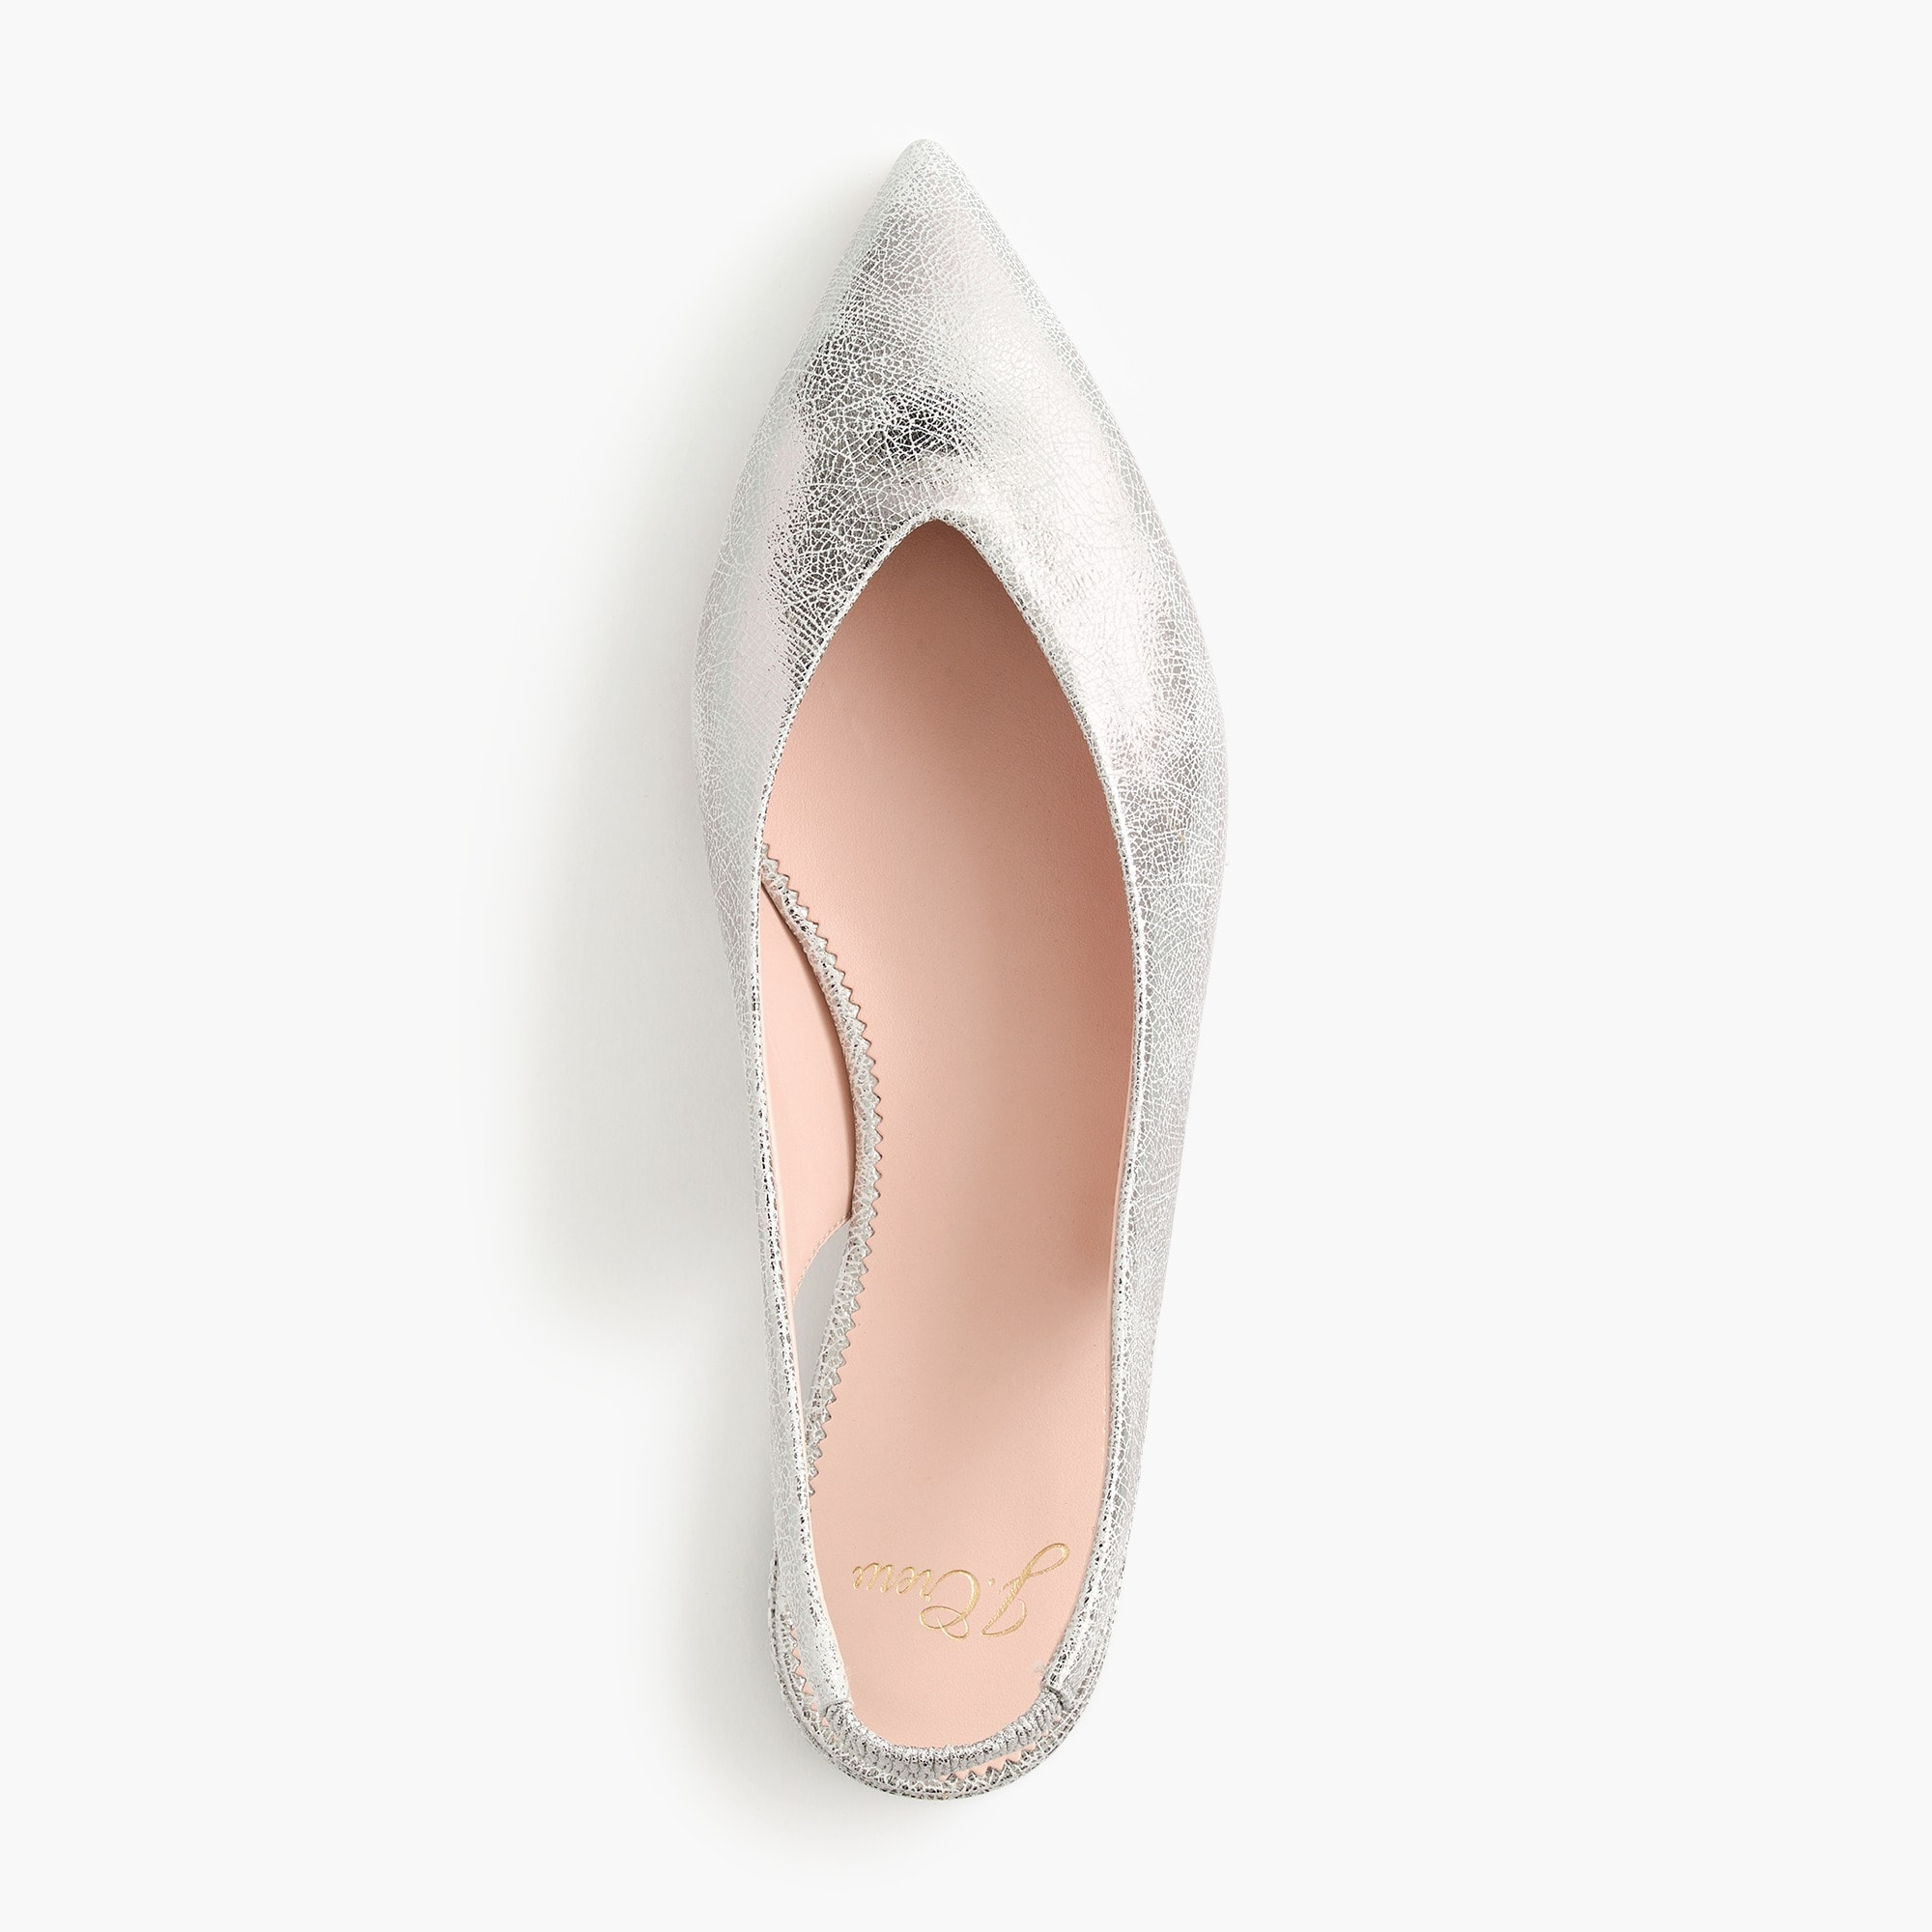 pointed-toe slingback flats in metallic cracked-leather : women flats